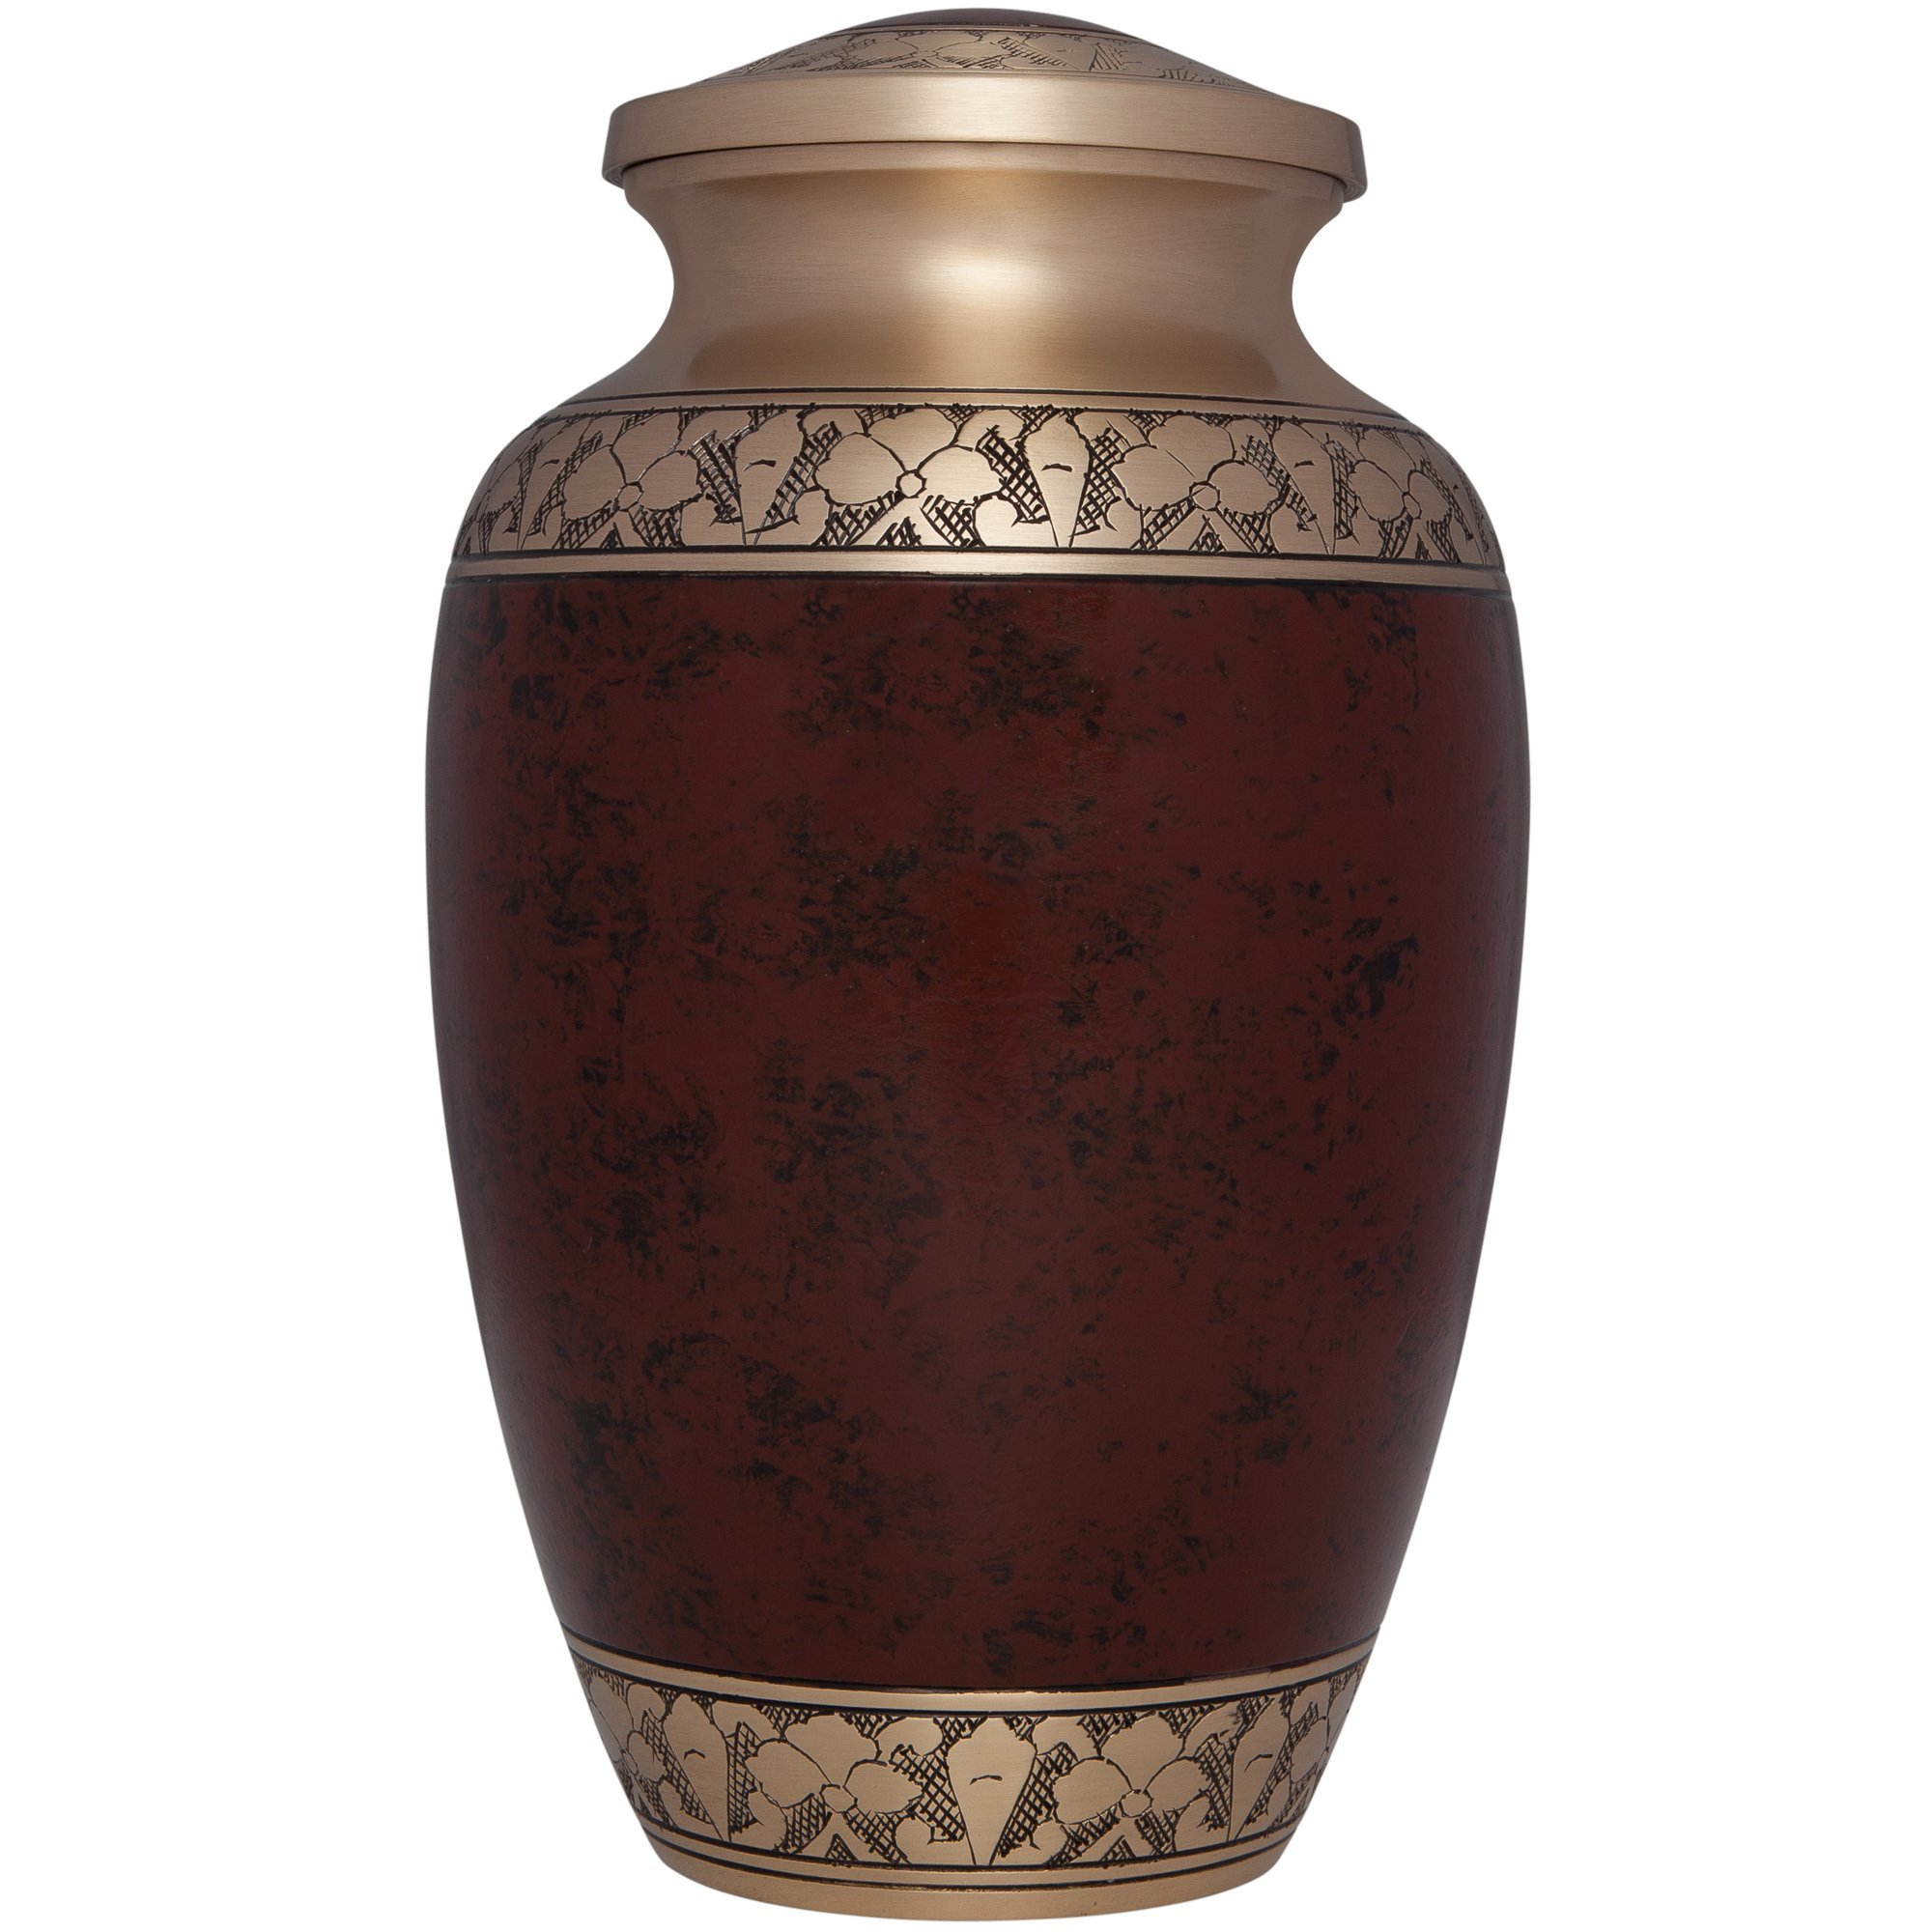 Brown Funeral Urn by Liliane Memorials - Cremation Urn for Human Ashes - Hand Made in Brass -Suitable for Cemetery Burial or Niche - Large Size fits remains of Adults up to 200 lbs- Tranquility Brown